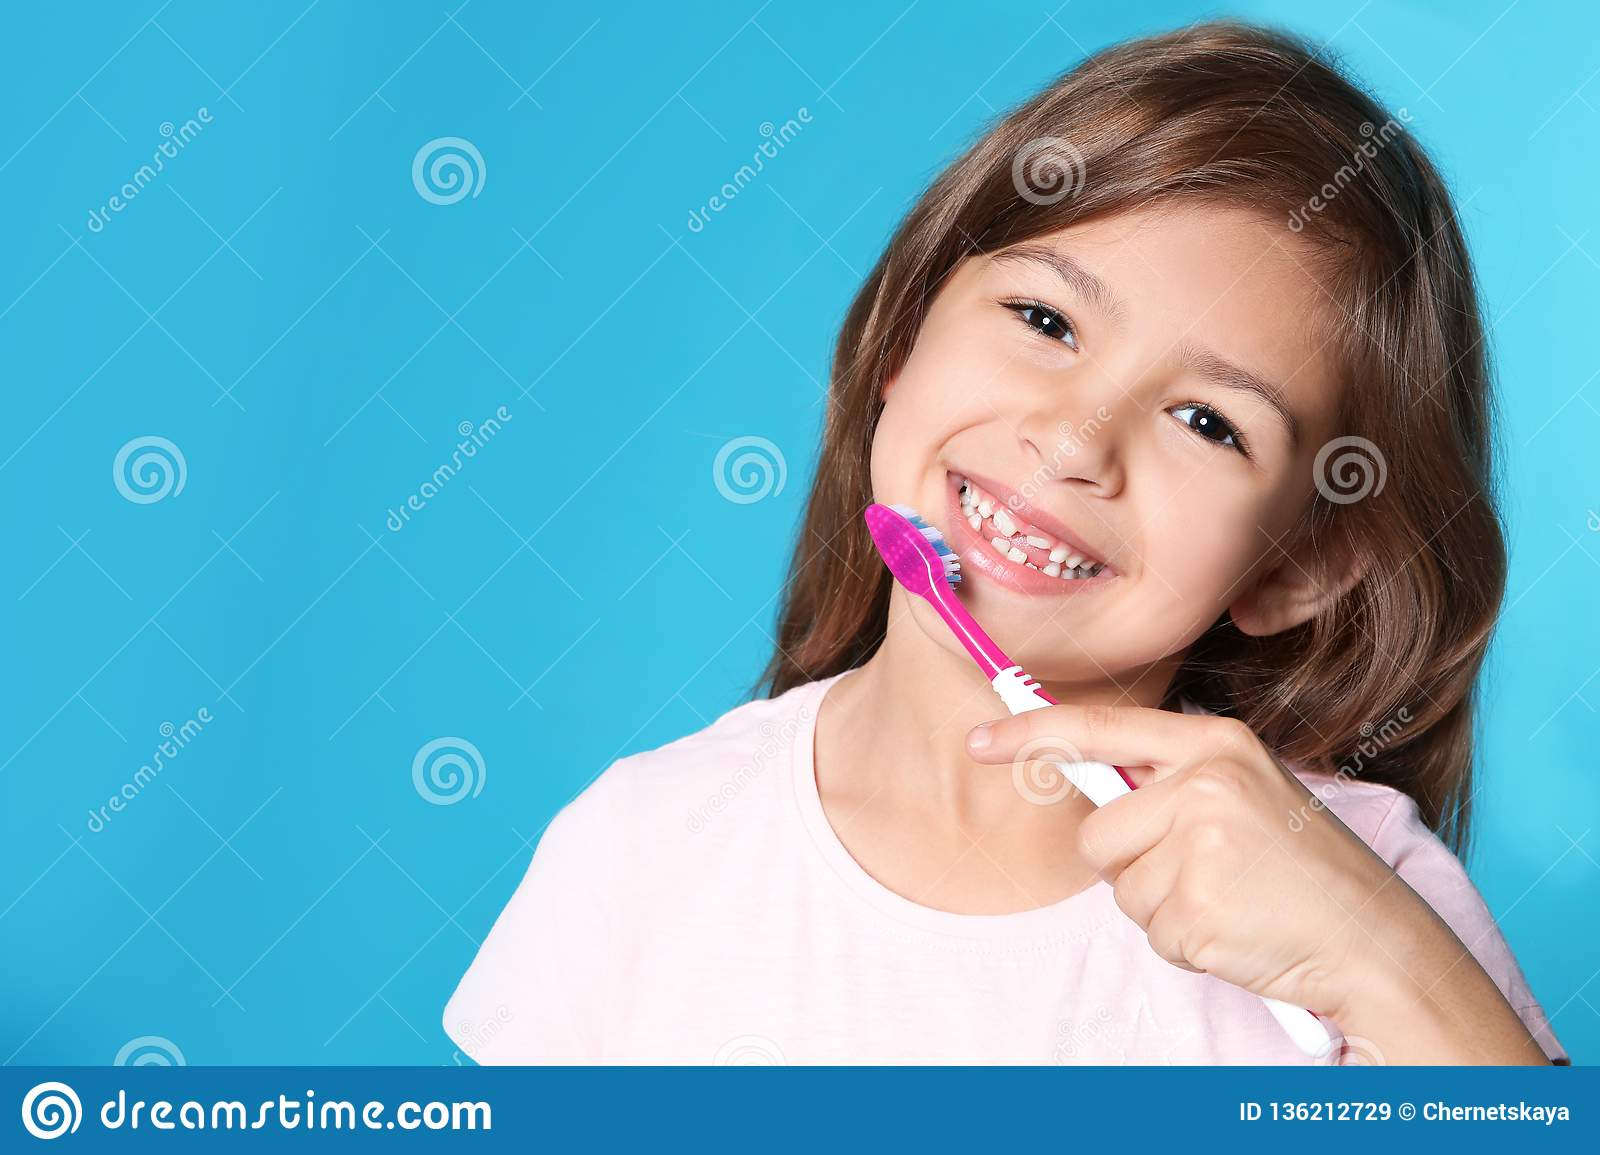 Portrait of little girl with toothbrush on color background.